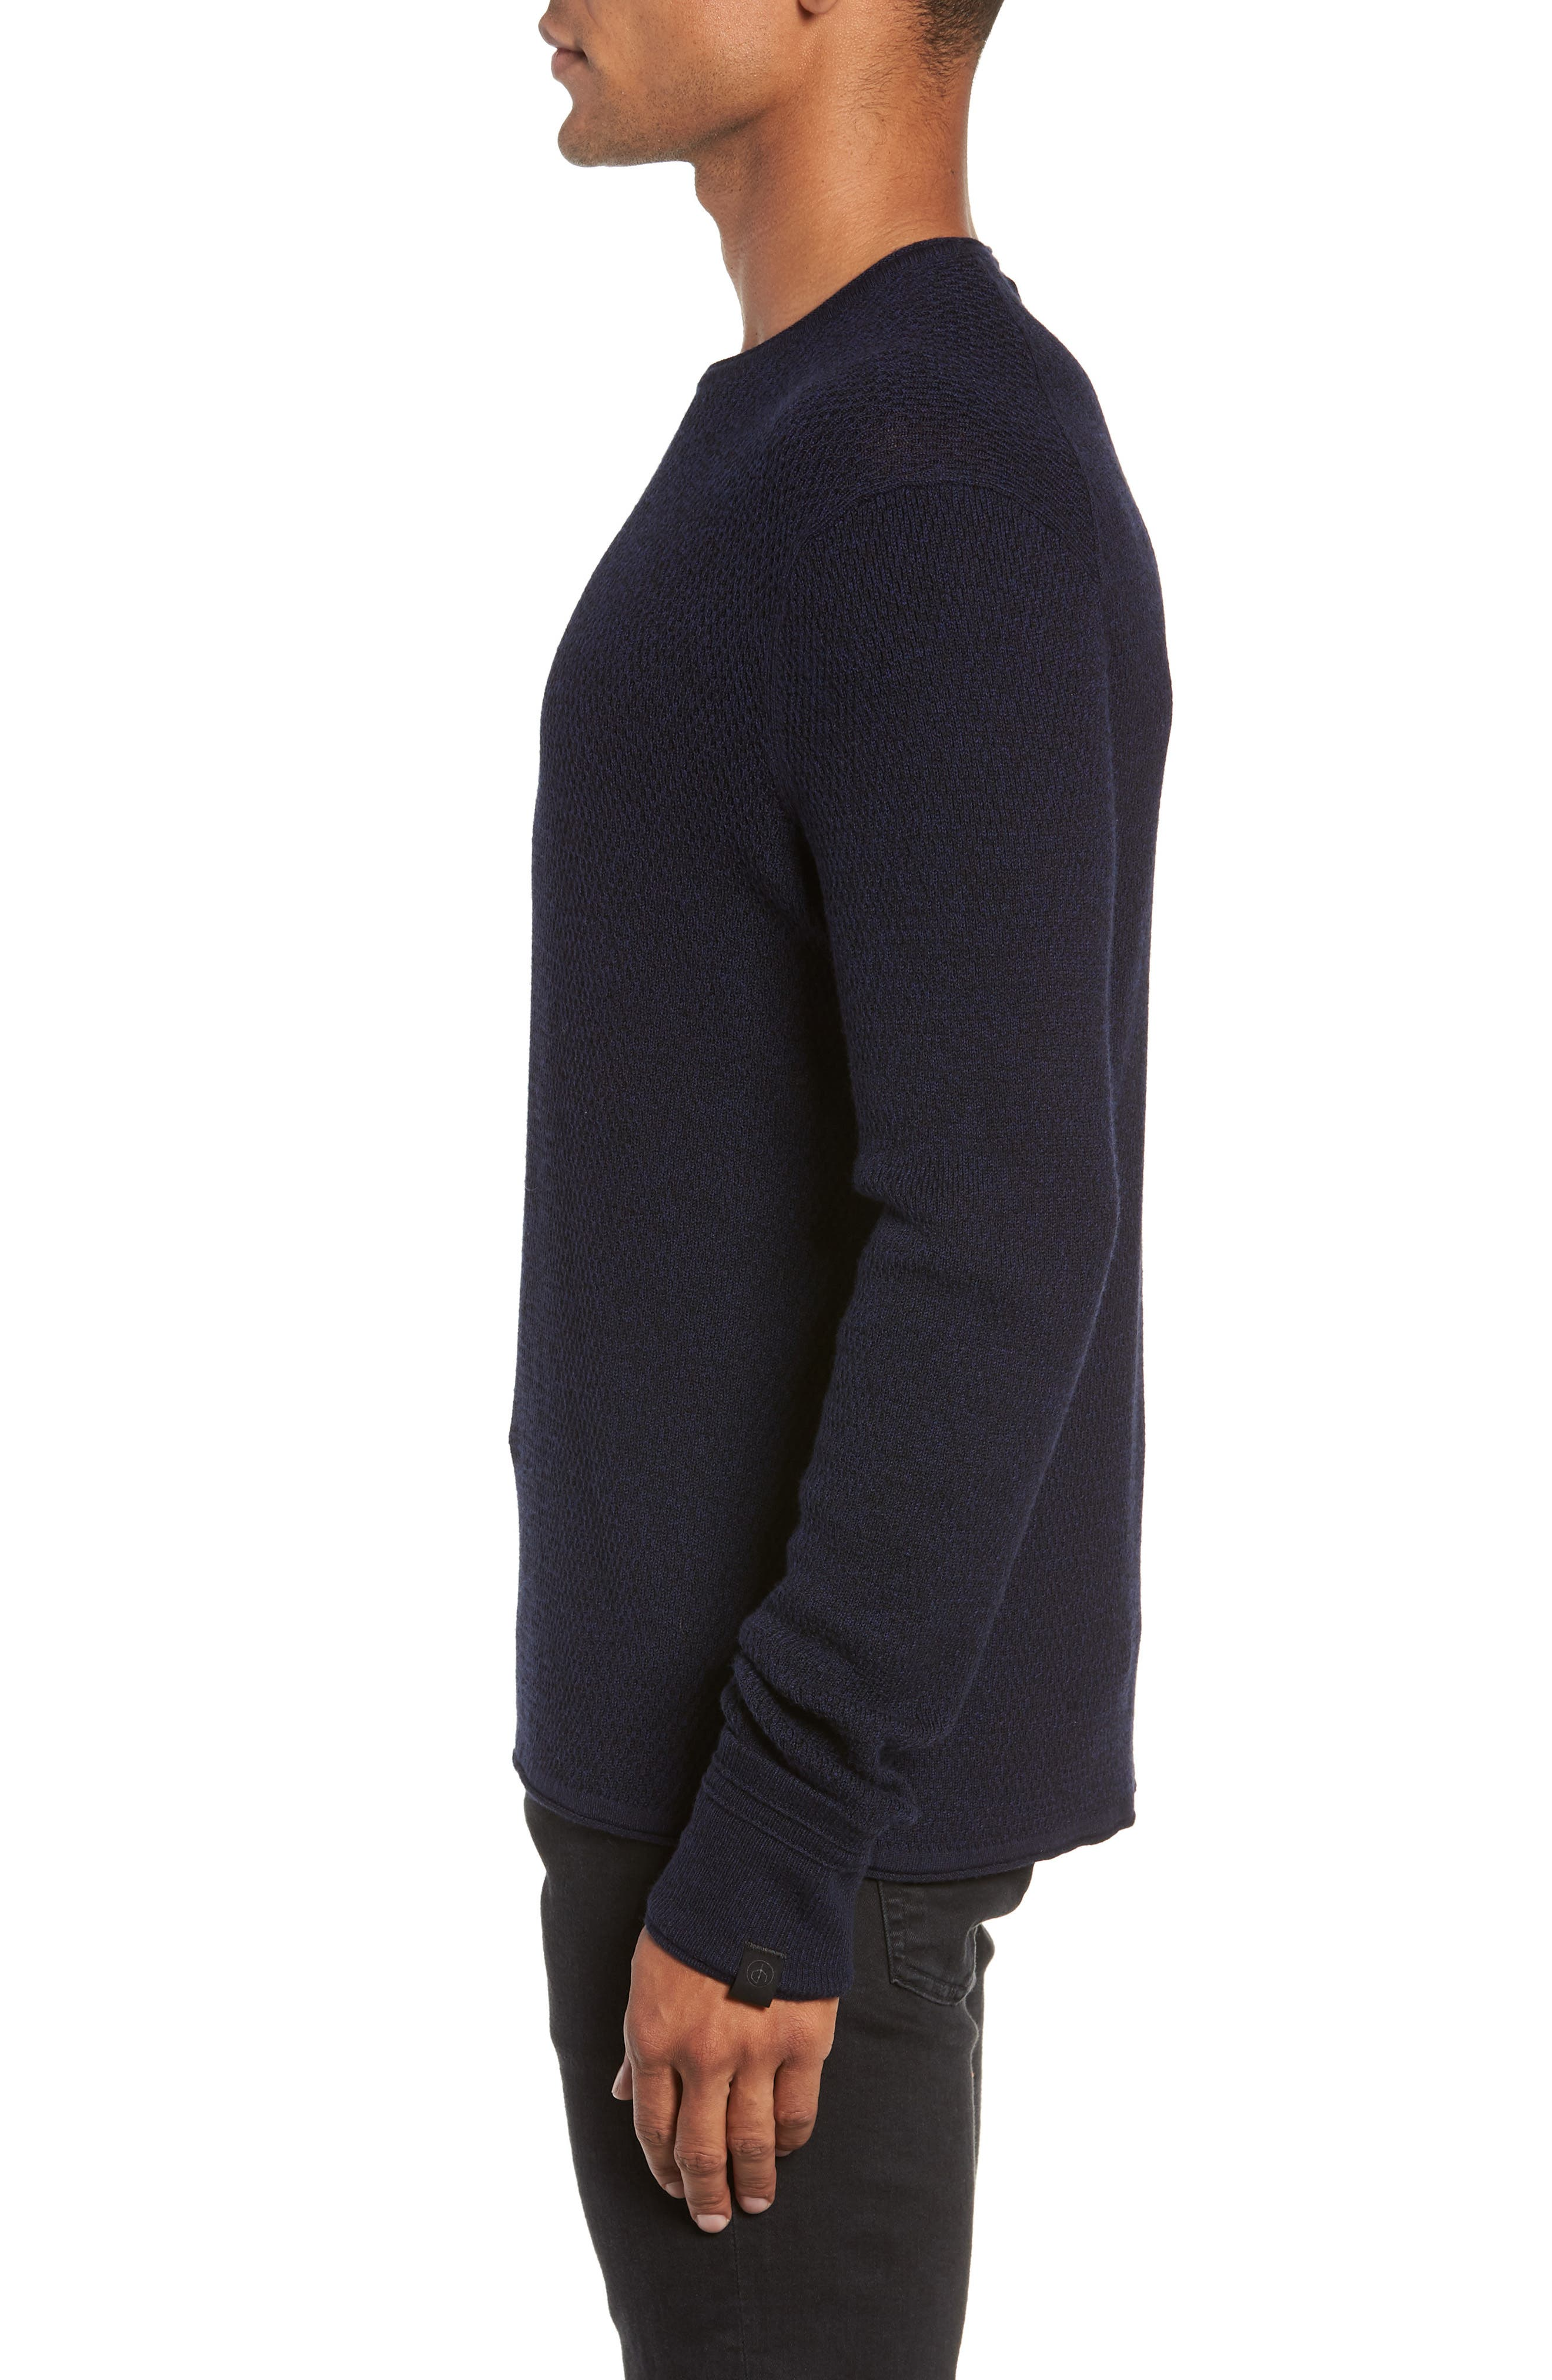 Gregory Wool Blend Crewneck Sweater,                             Alternate thumbnail 3, color,                             NAVY